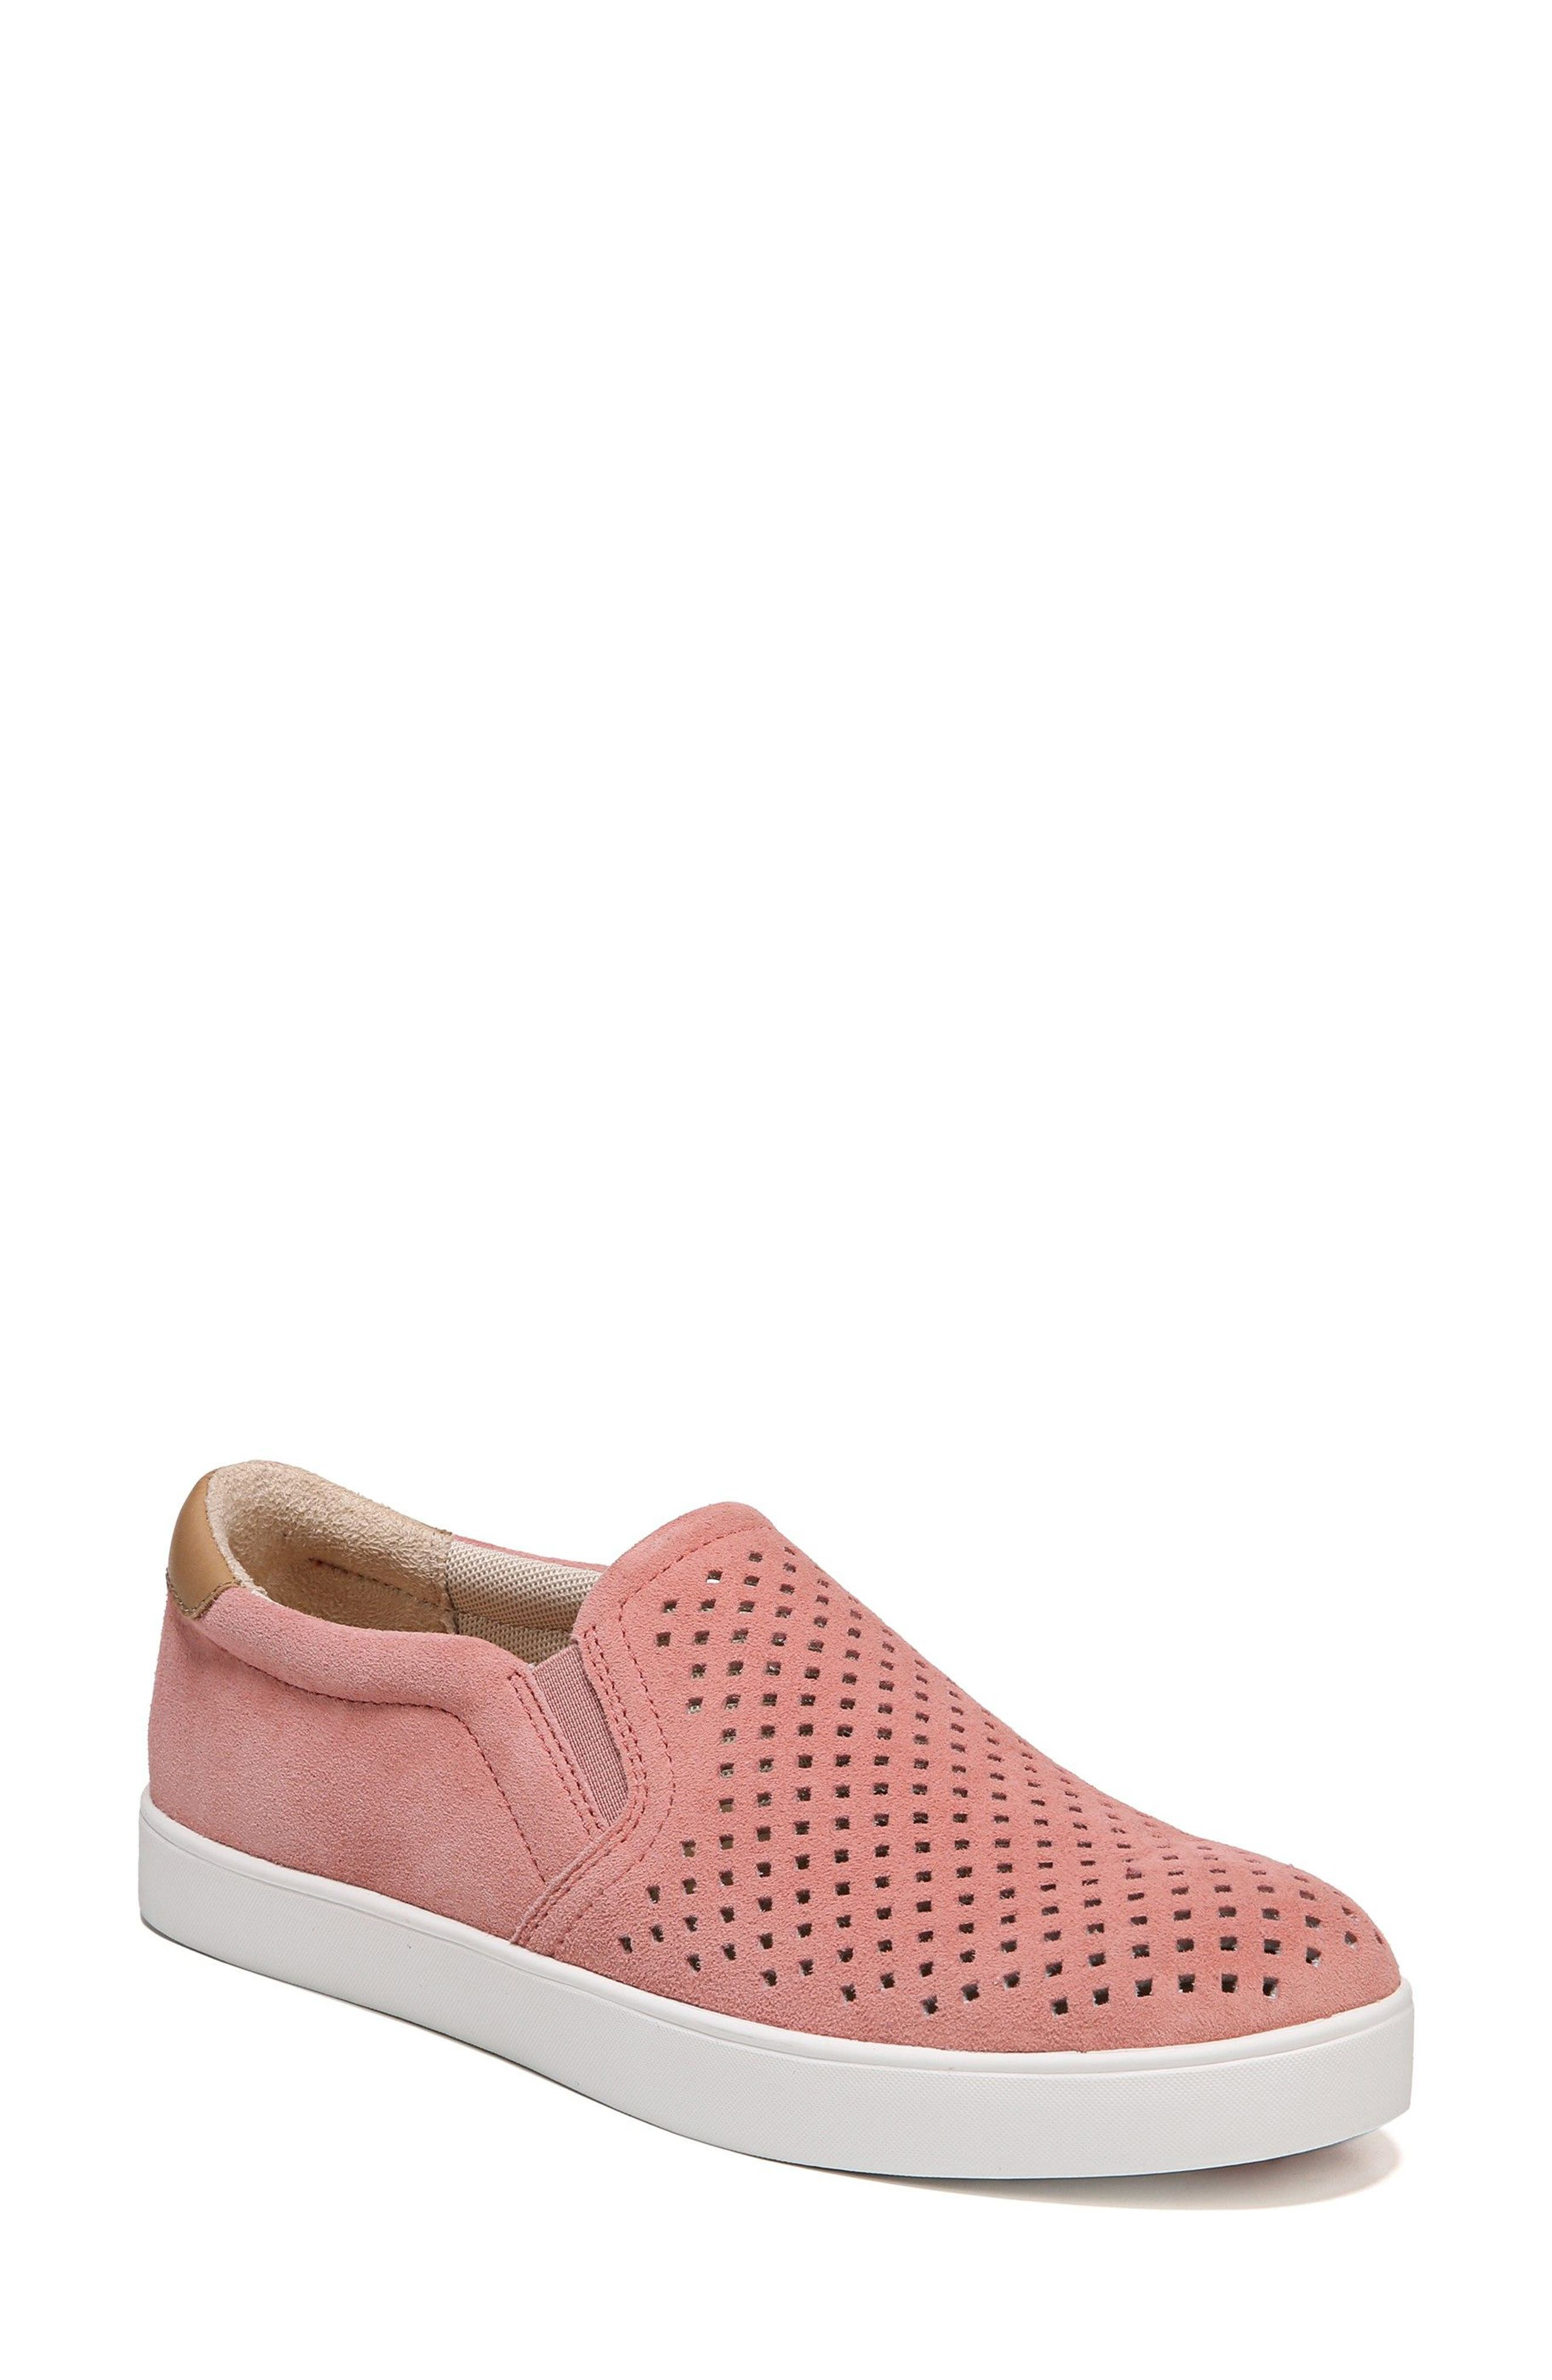 Original Collection 'Scout' Slip On Sneaker,                         Main,                         color, ROSY MAUVE SUEDE